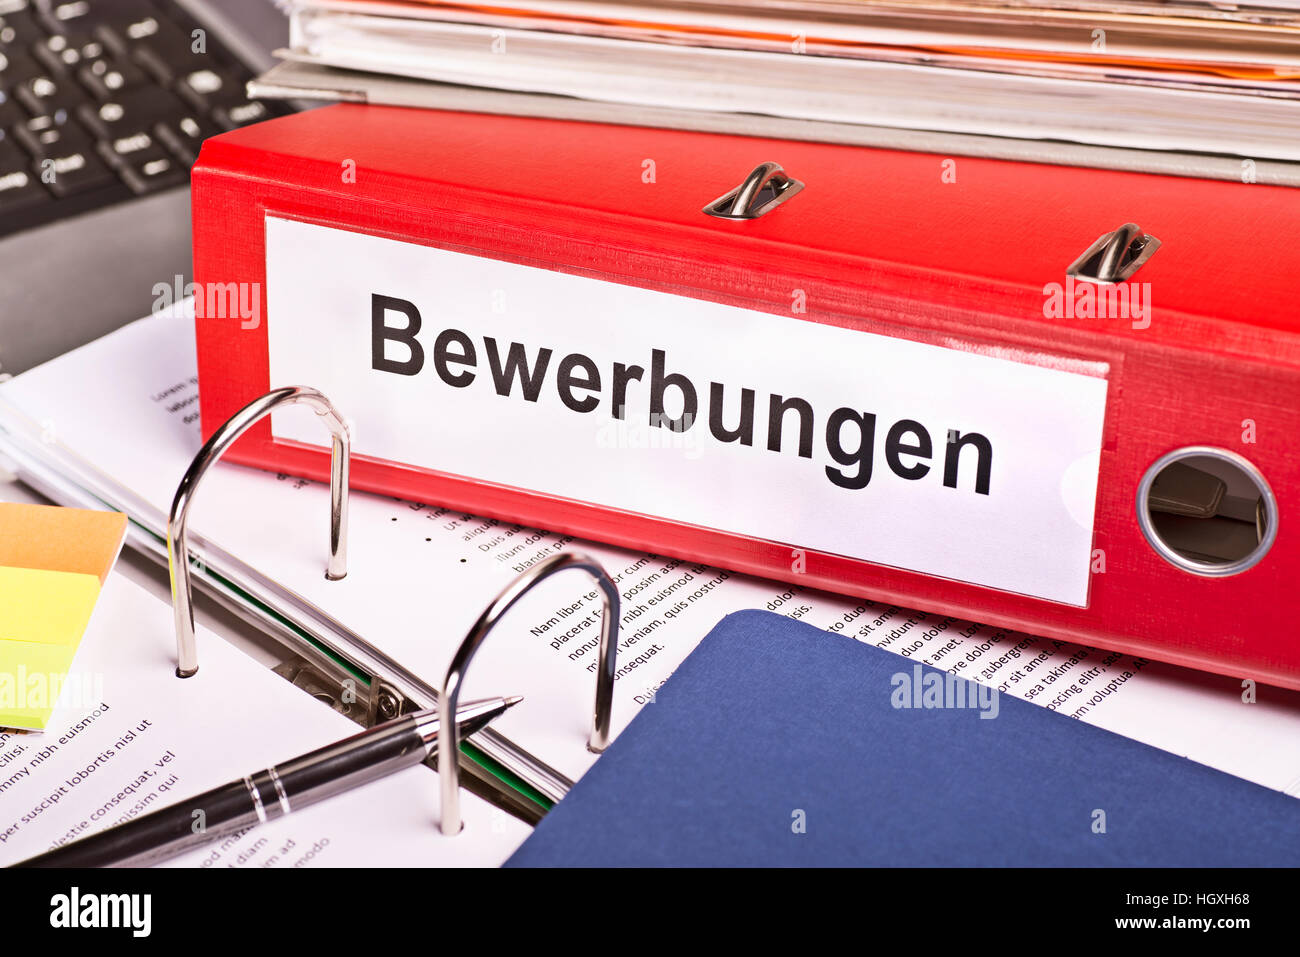 Red file folder labeled 'Bewerbungen' for Applications - Stock Image